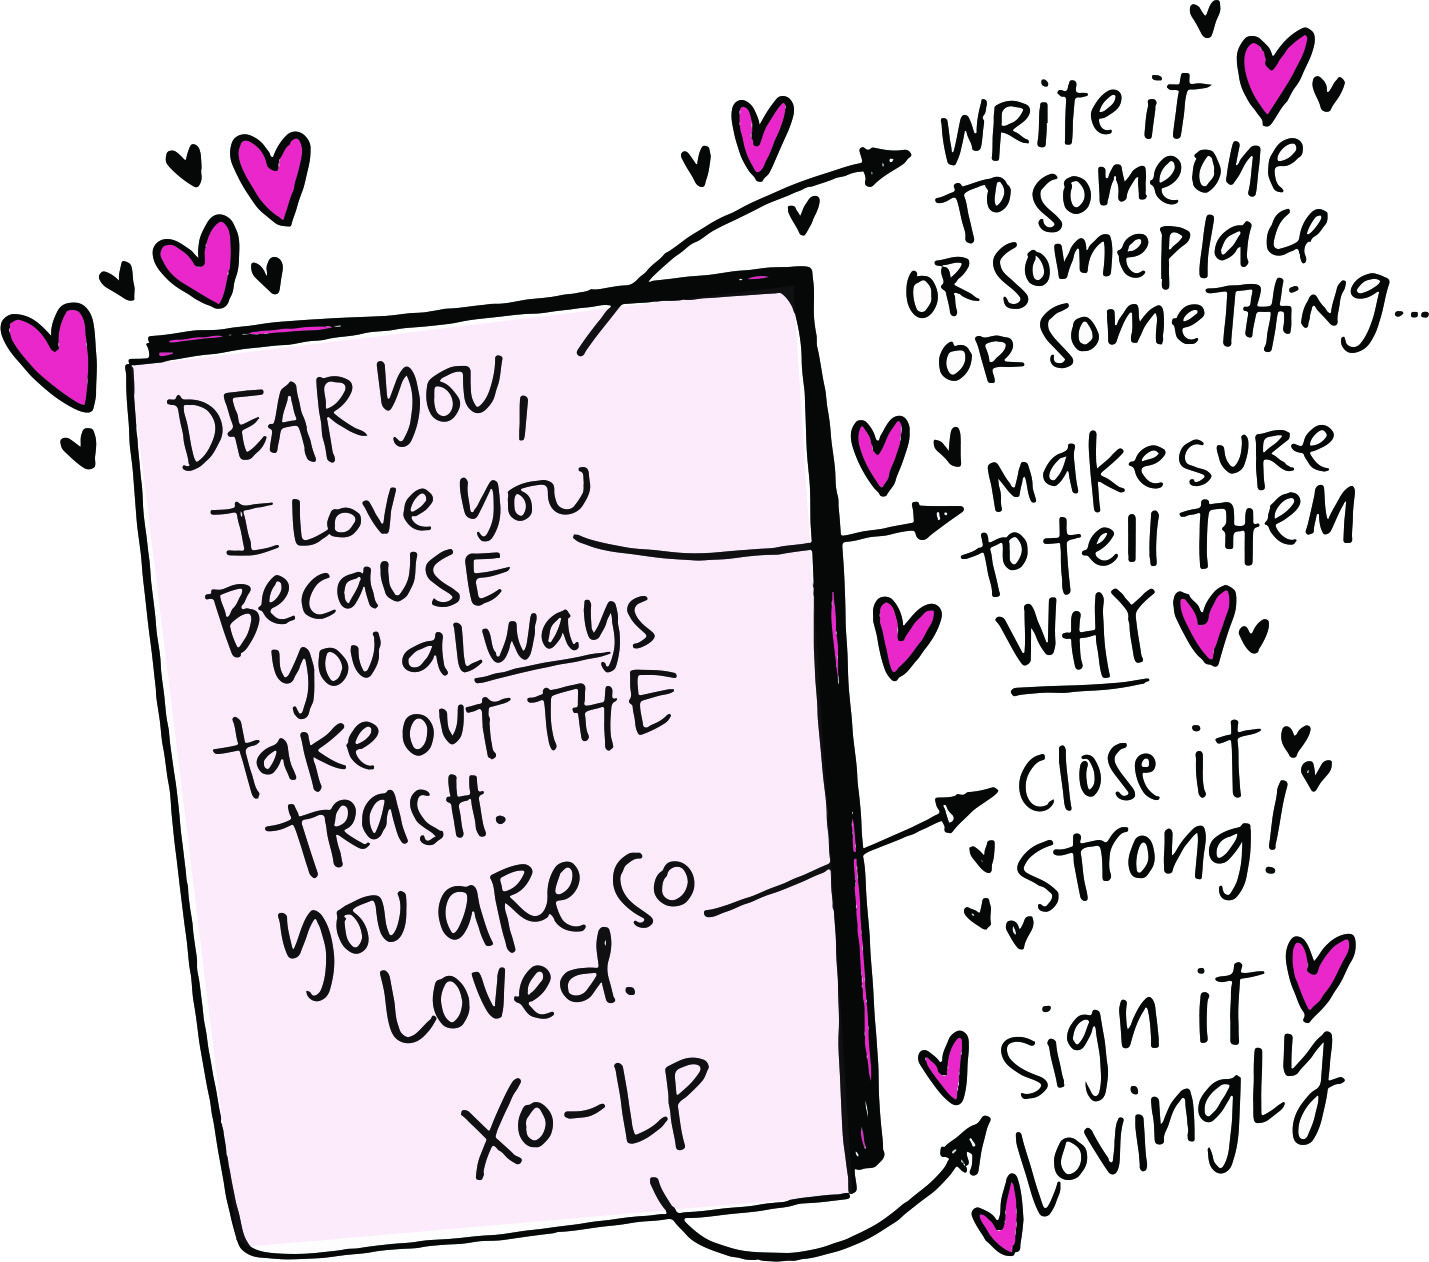 Dear You- a love letter how to.jpg